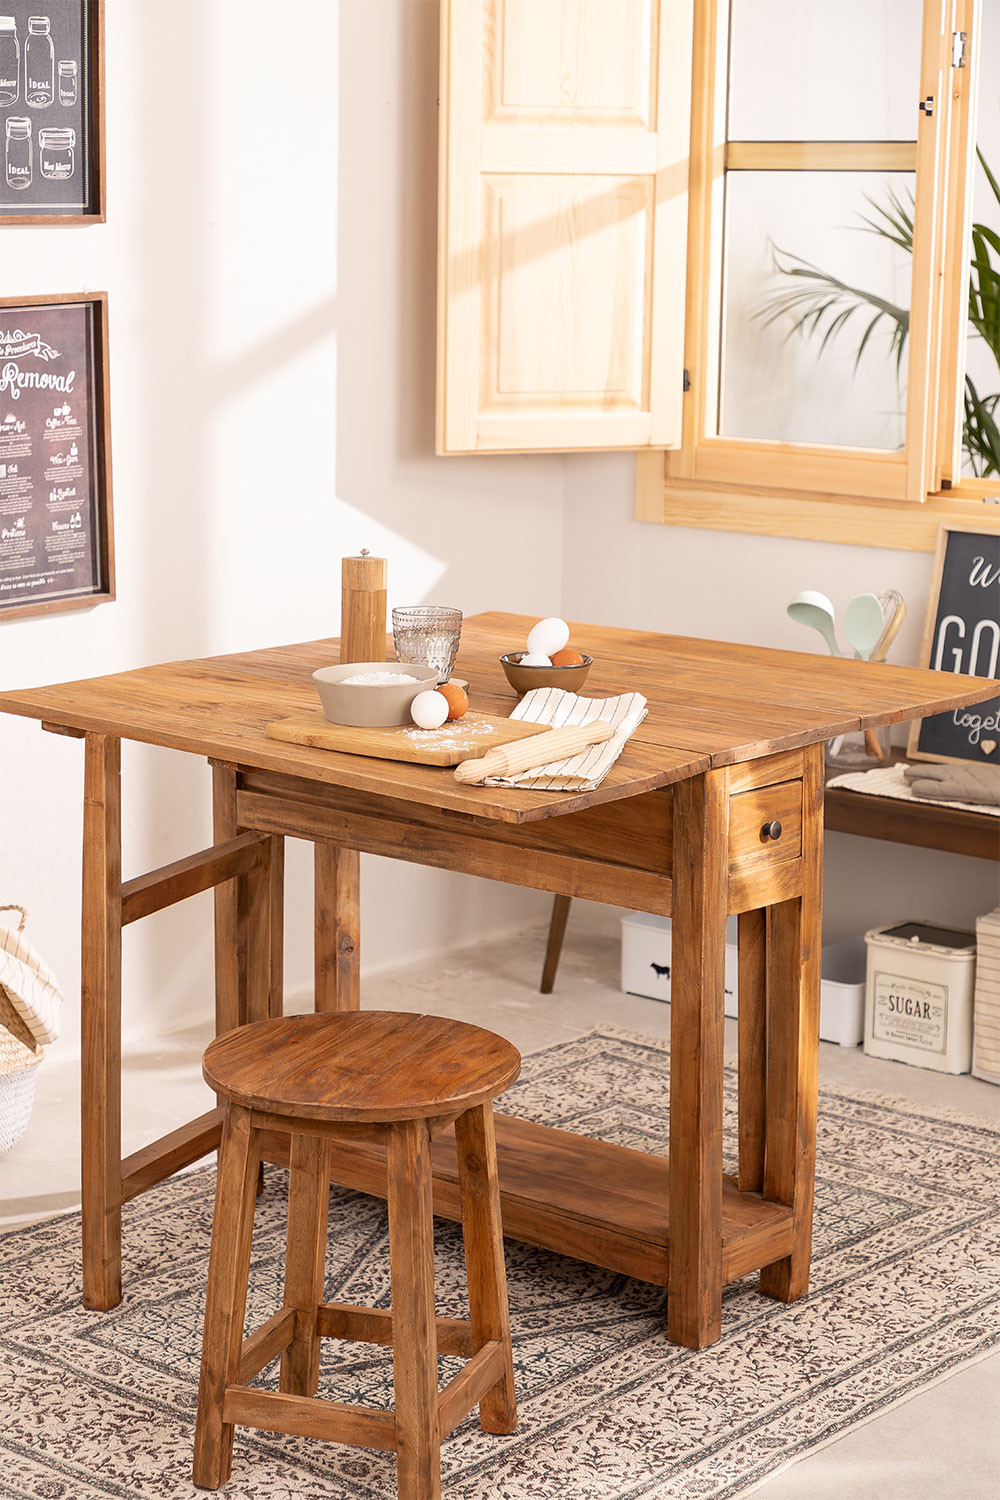 Recycled Wood Folding Table Abura, gallery image 1